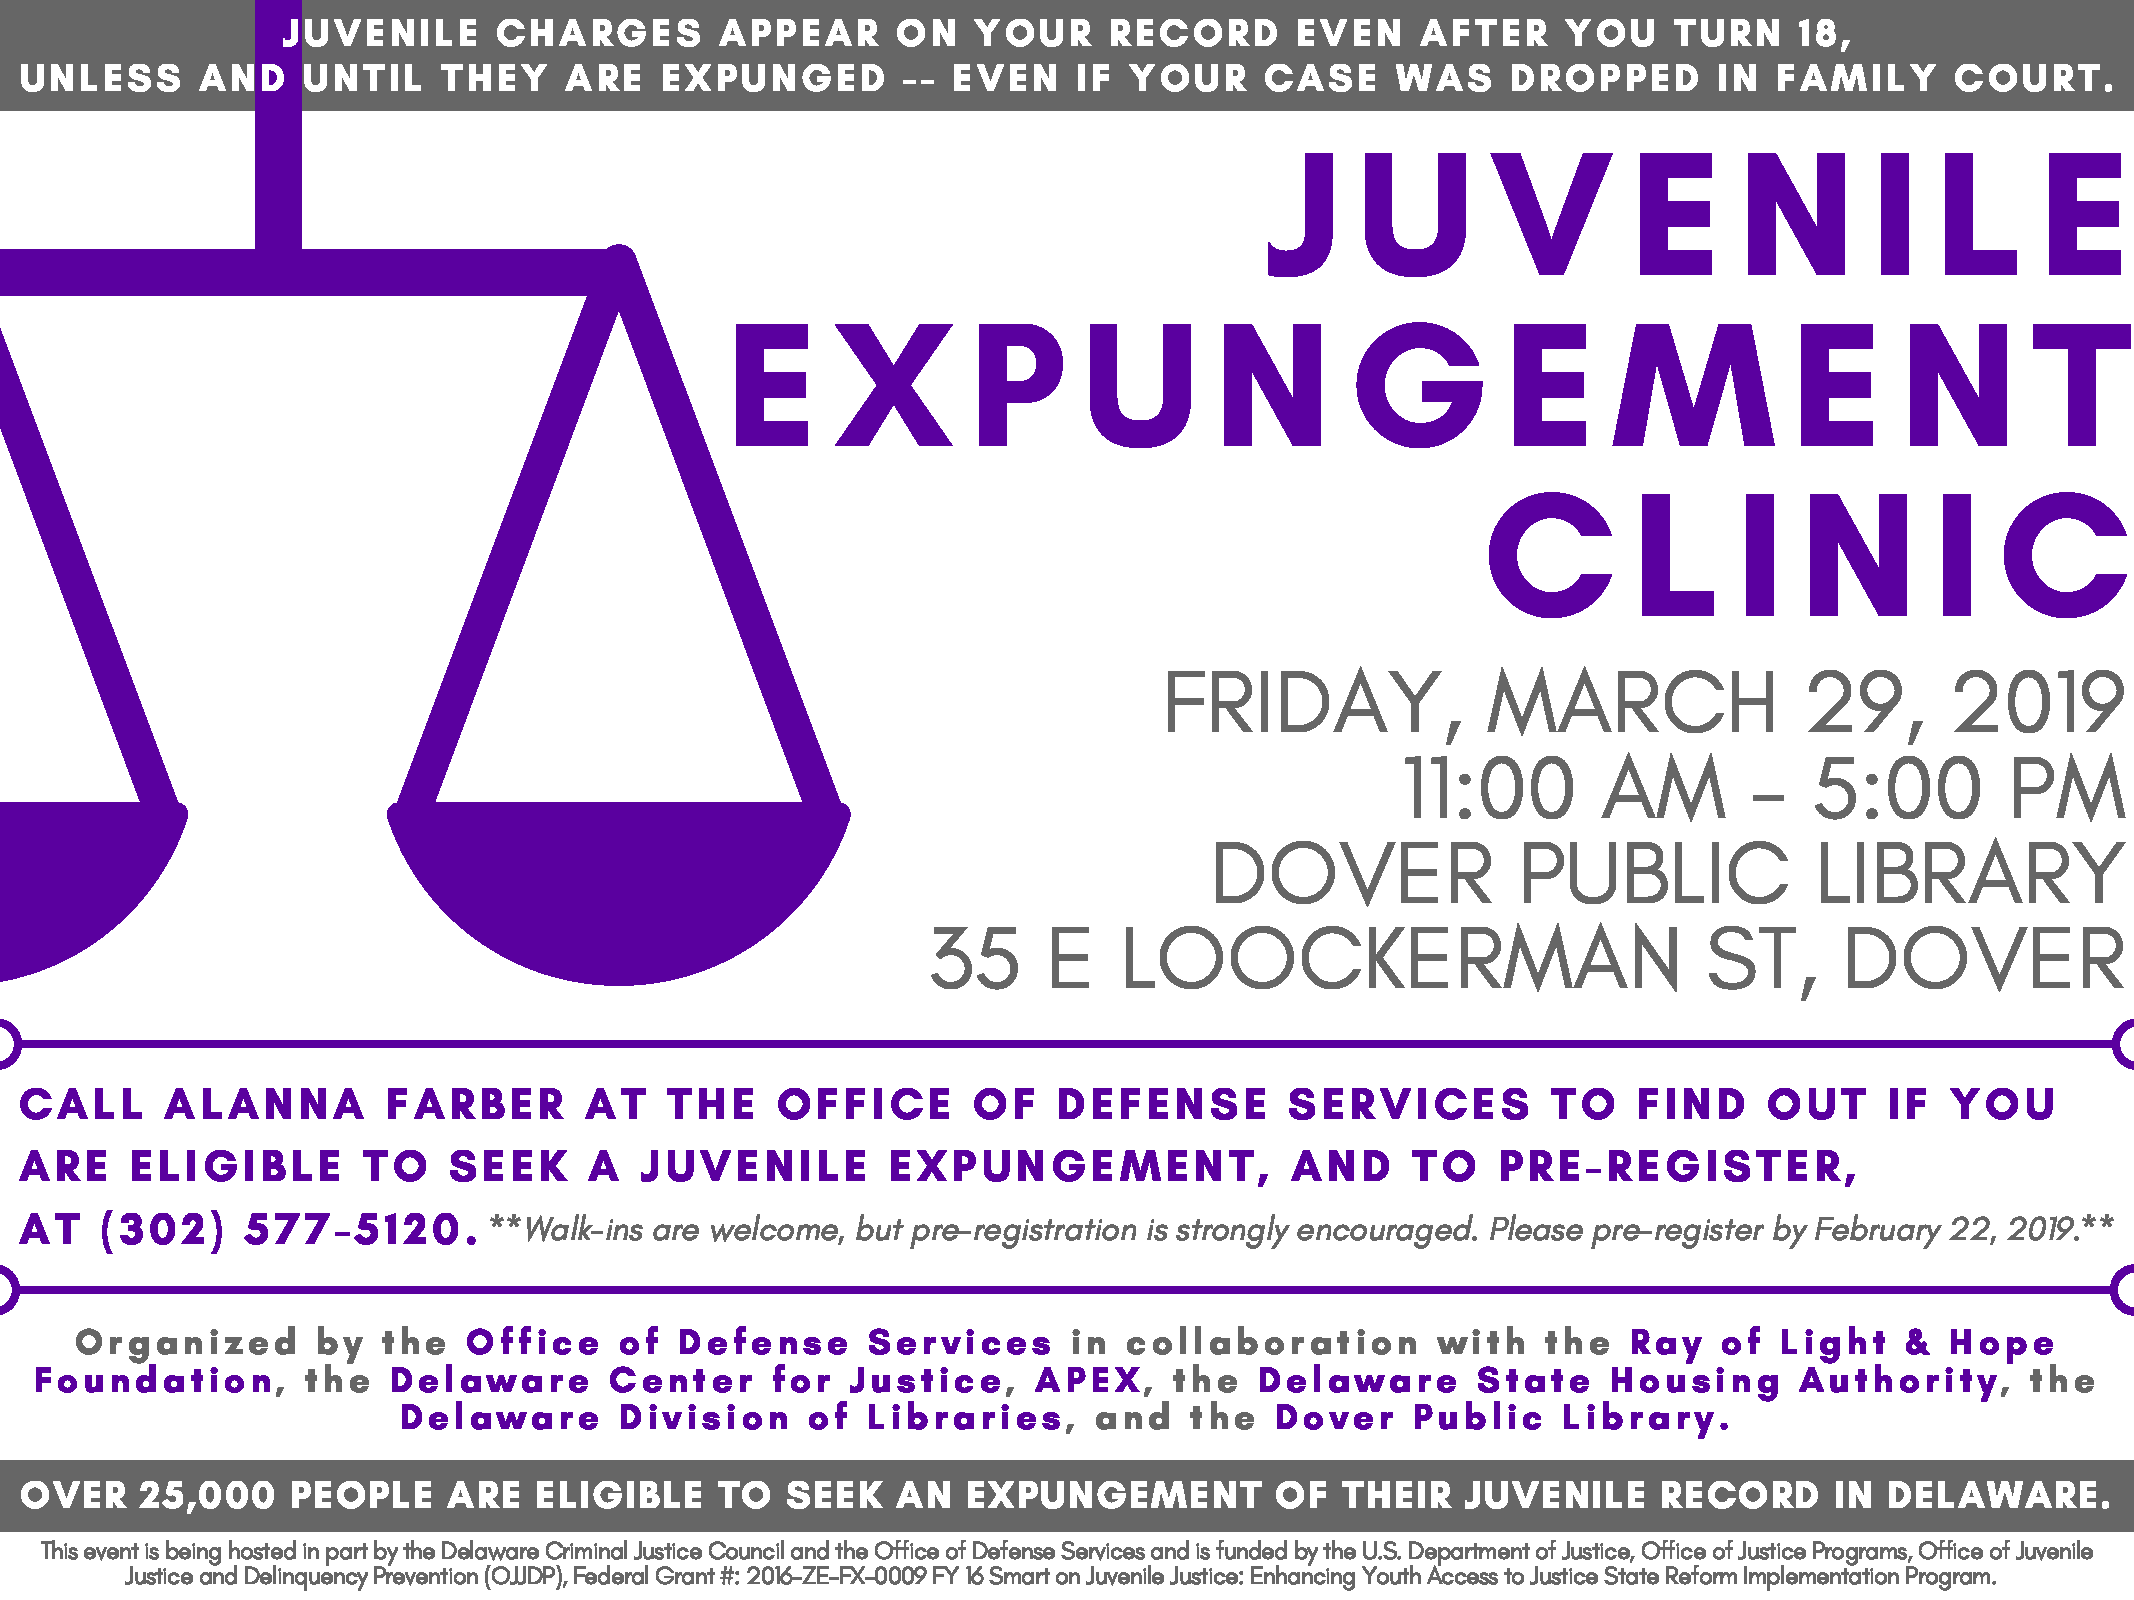 Kent County Juvenile Expungement Clinic March 2019 _4_.png